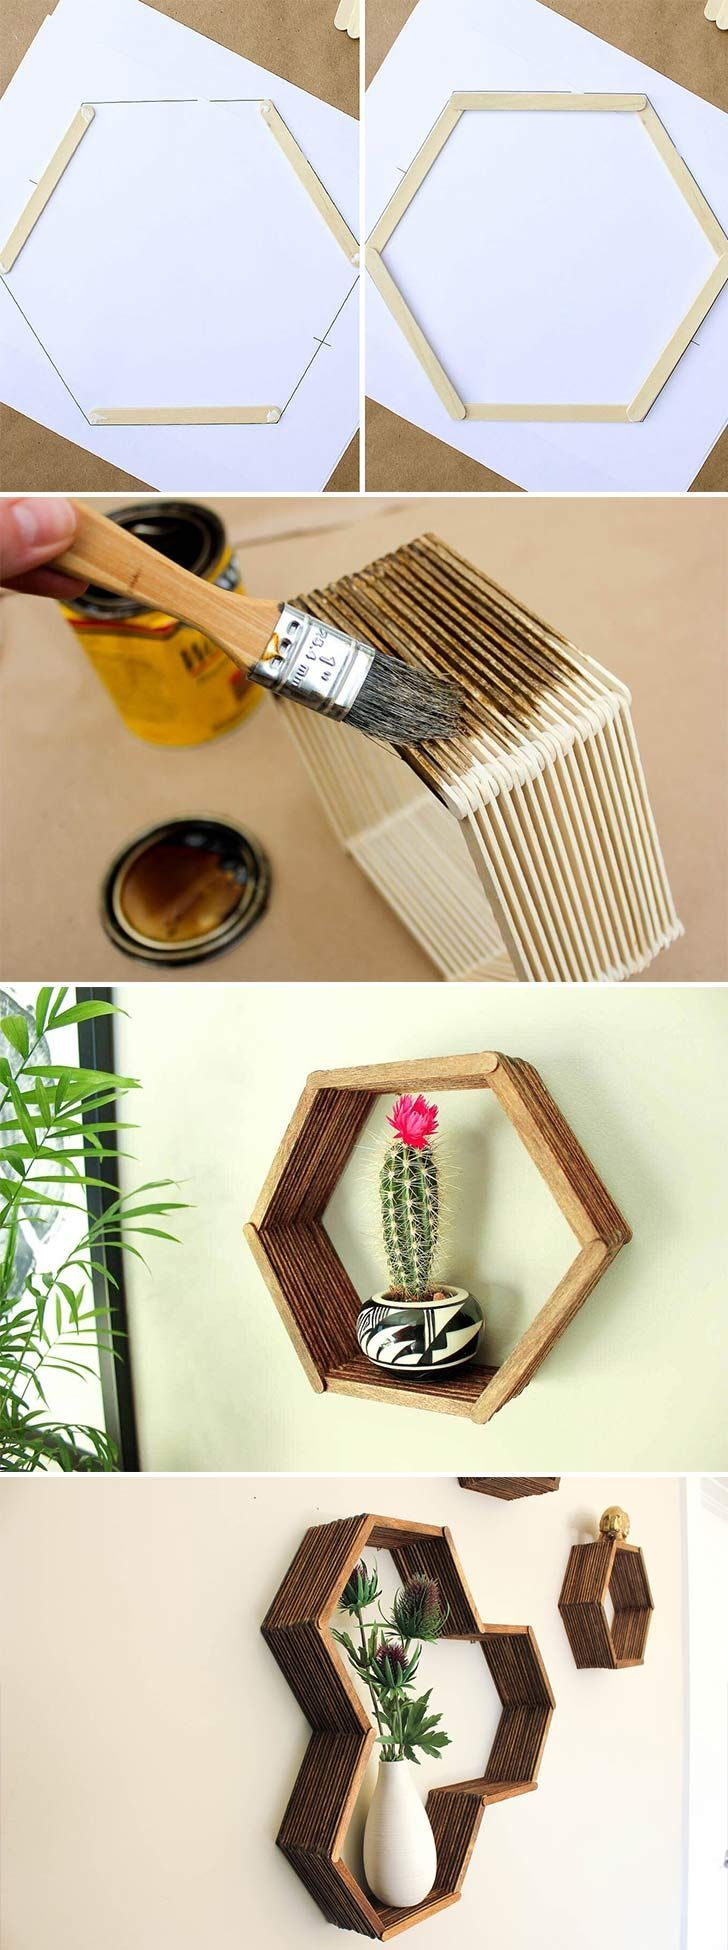 40 Amazing DIY Home Decor Ideas That Won t Look DIYed. Best 25  Home decor items ideas on Pinterest   House decoration